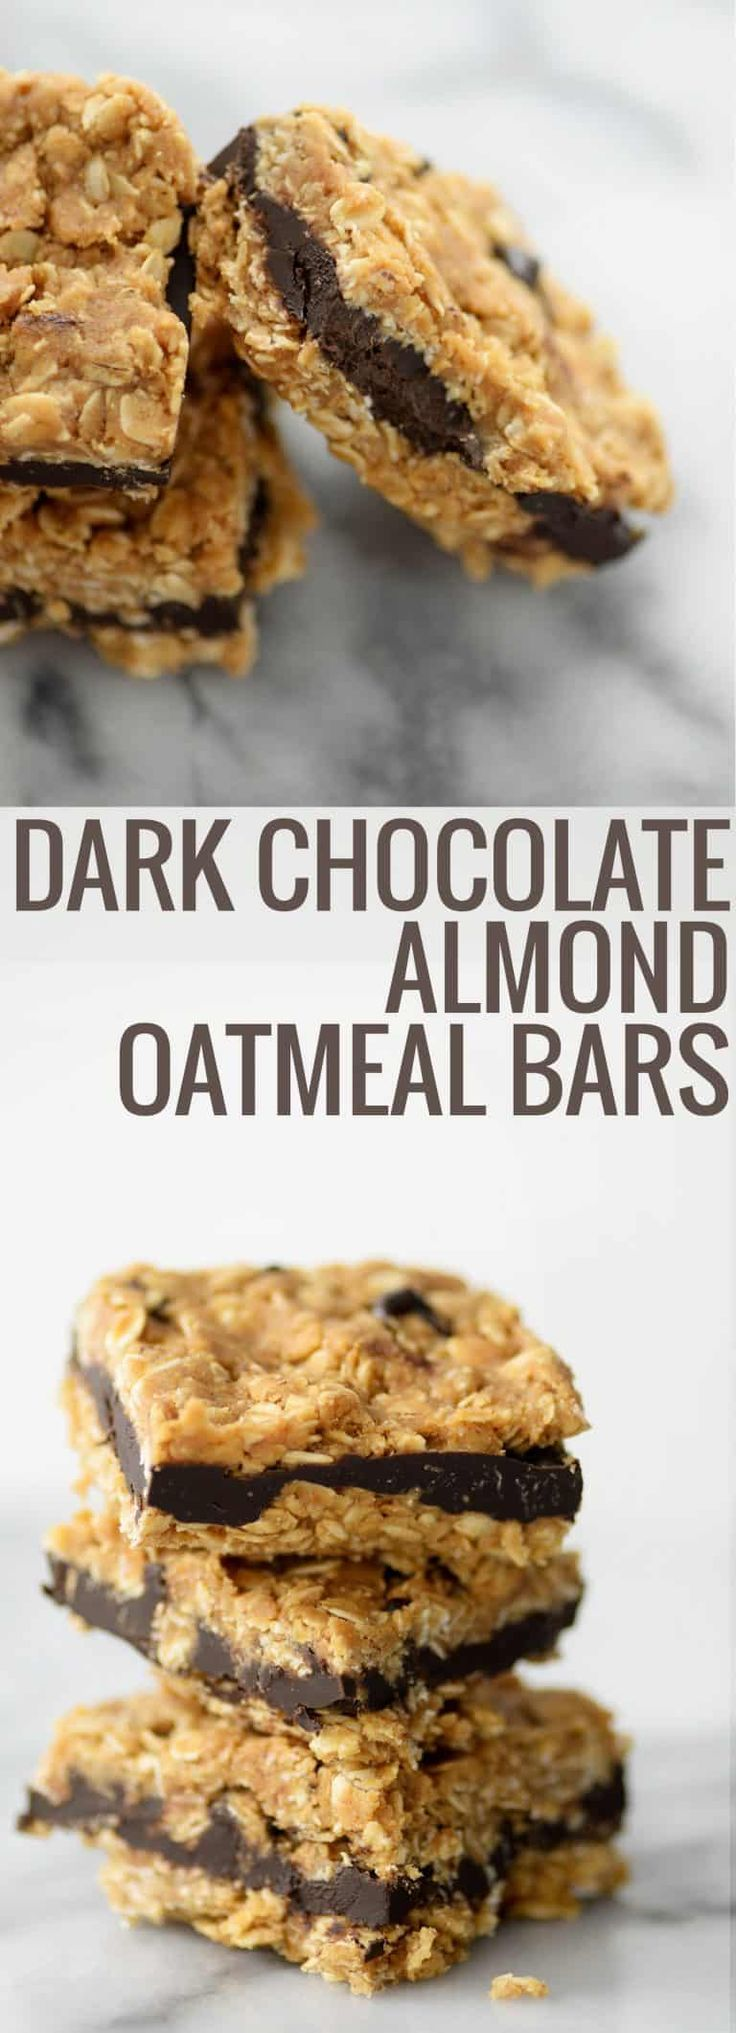 Dark Chocolate Almond Oatmeal Bars. You've gotta try these naturally sweetened oatmeal cookie bars, layered with dark chocolate almond butter. Vegan | #granolabars #oats #snack #vegan | www.delishknowledge.com